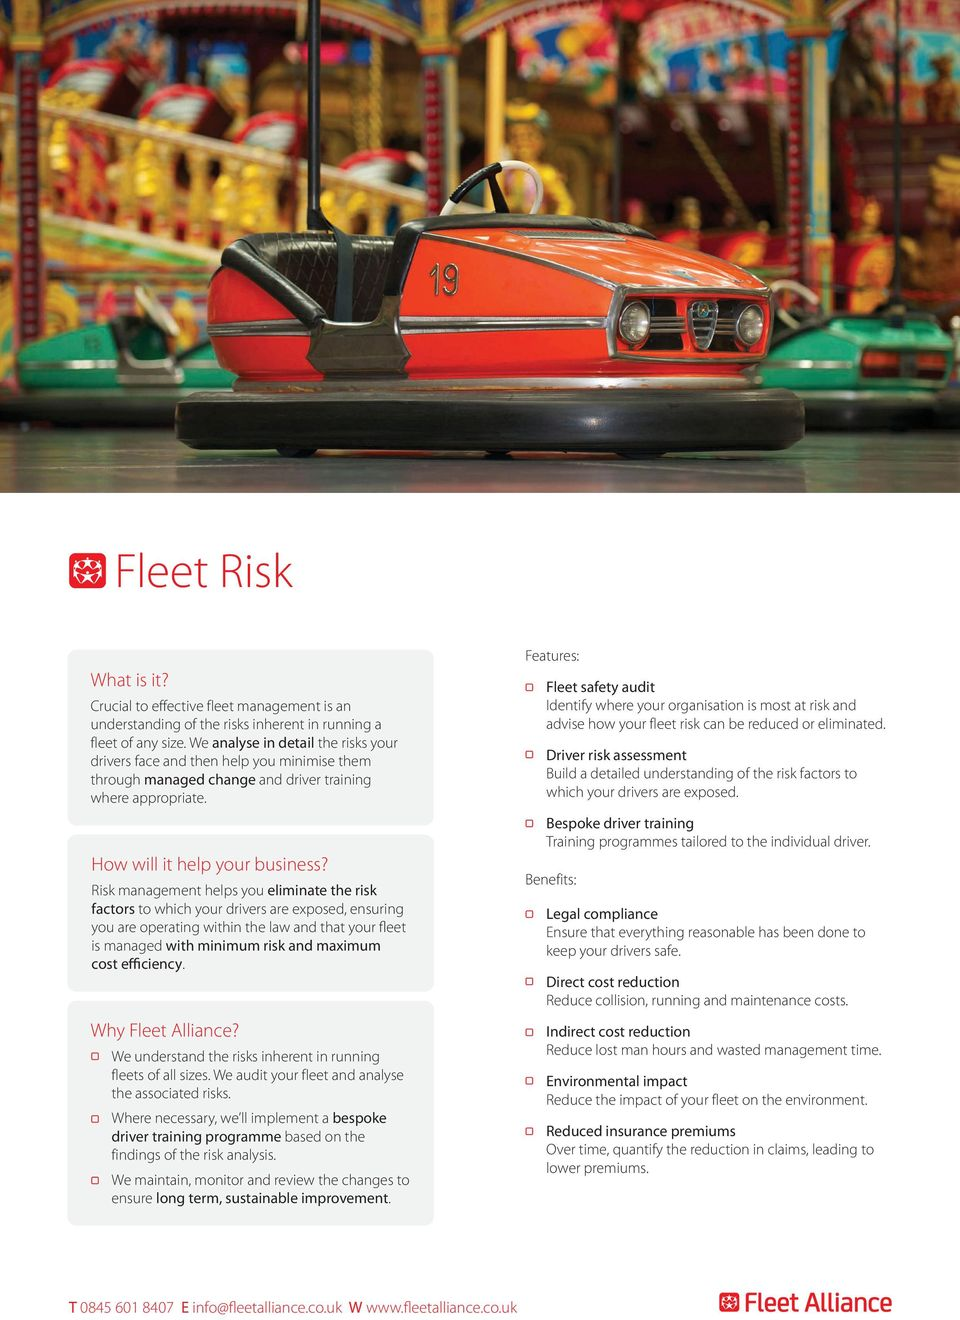 Risk management helps you eliminate the risk factors to which your drivers are exposed, ensuring you are operating within the law and that your fleet is managed with minimum risk and maximum cost